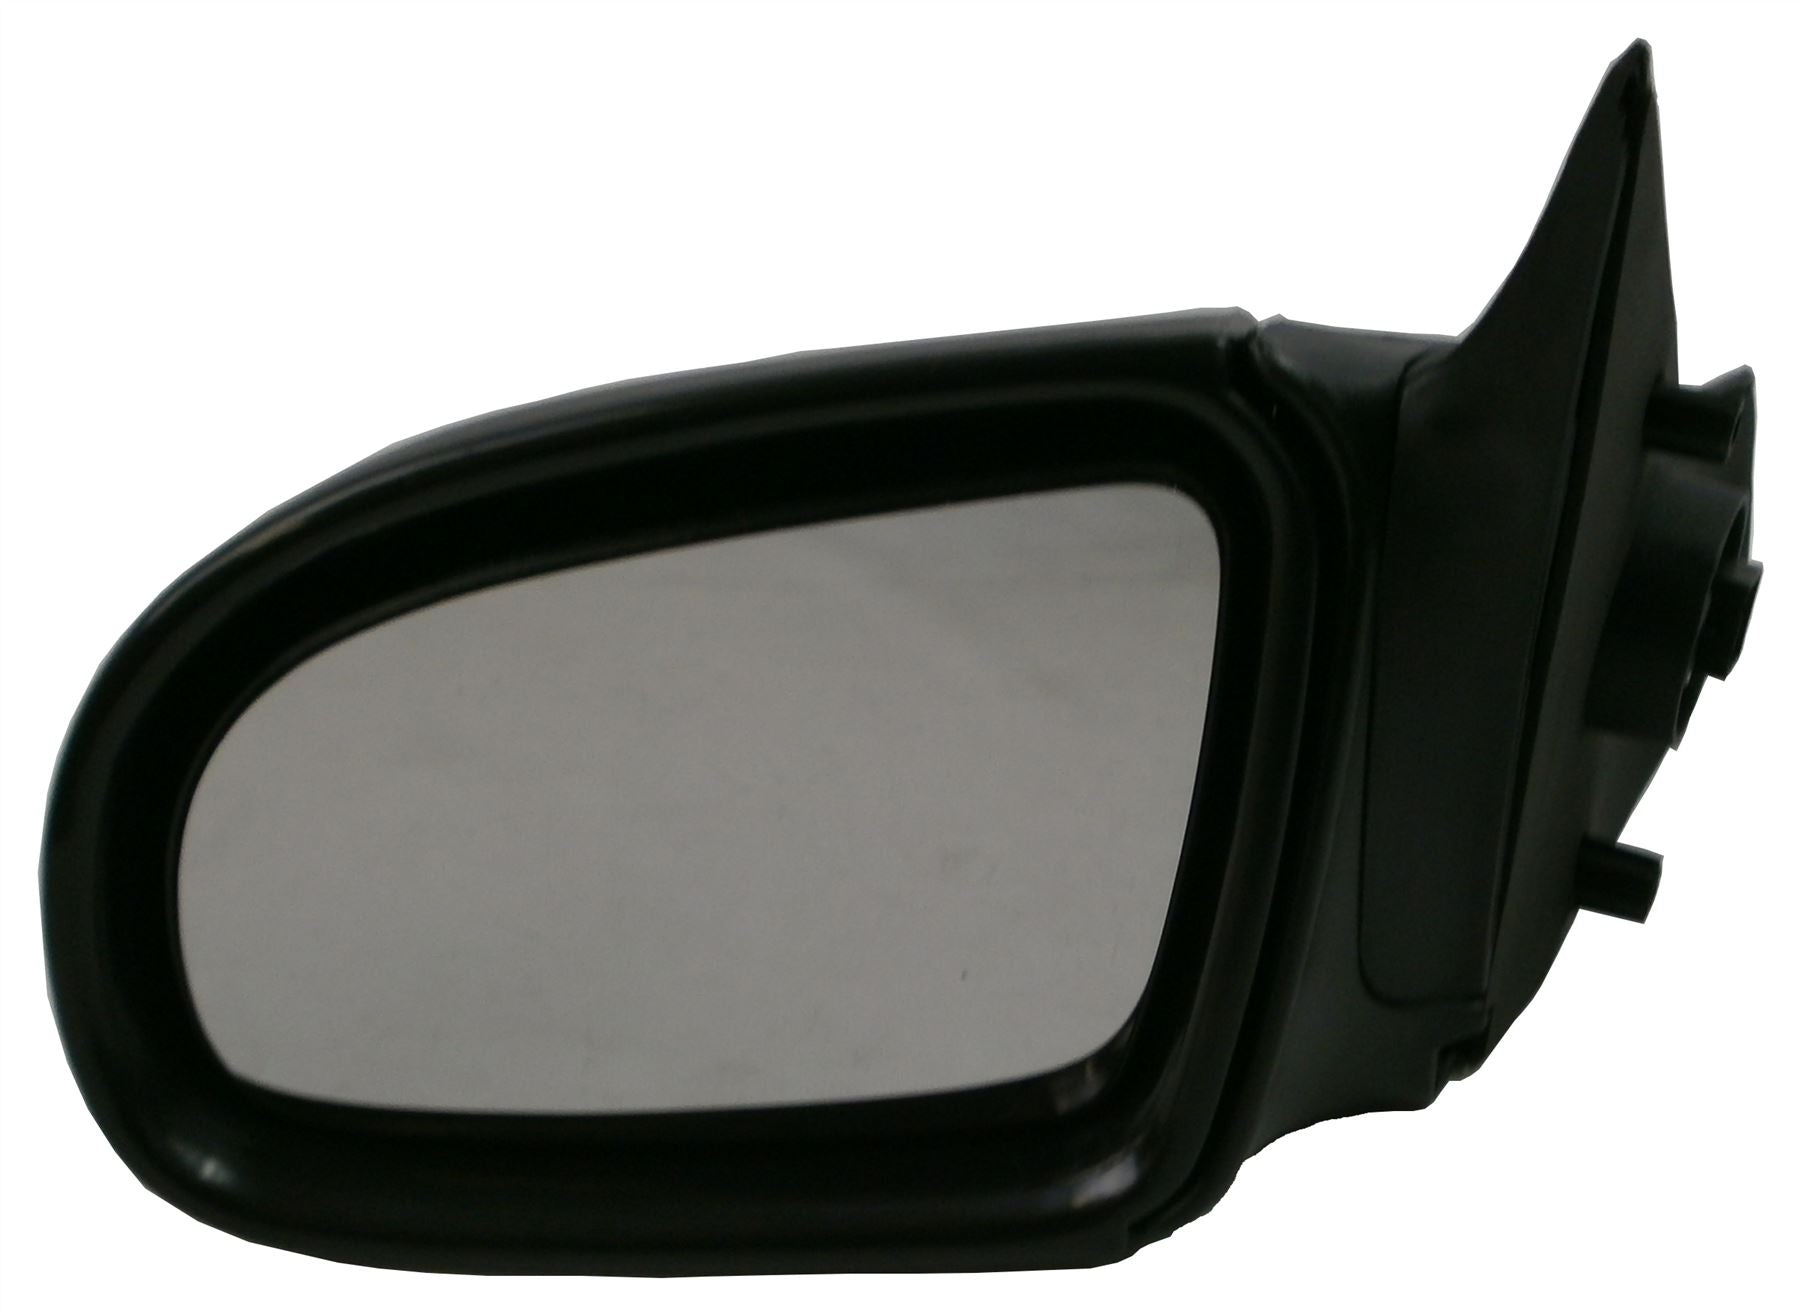 Vauxhall Corsa B Mk.1 1993-2000 Electric Wing Mirror Black Passenger Side N/S